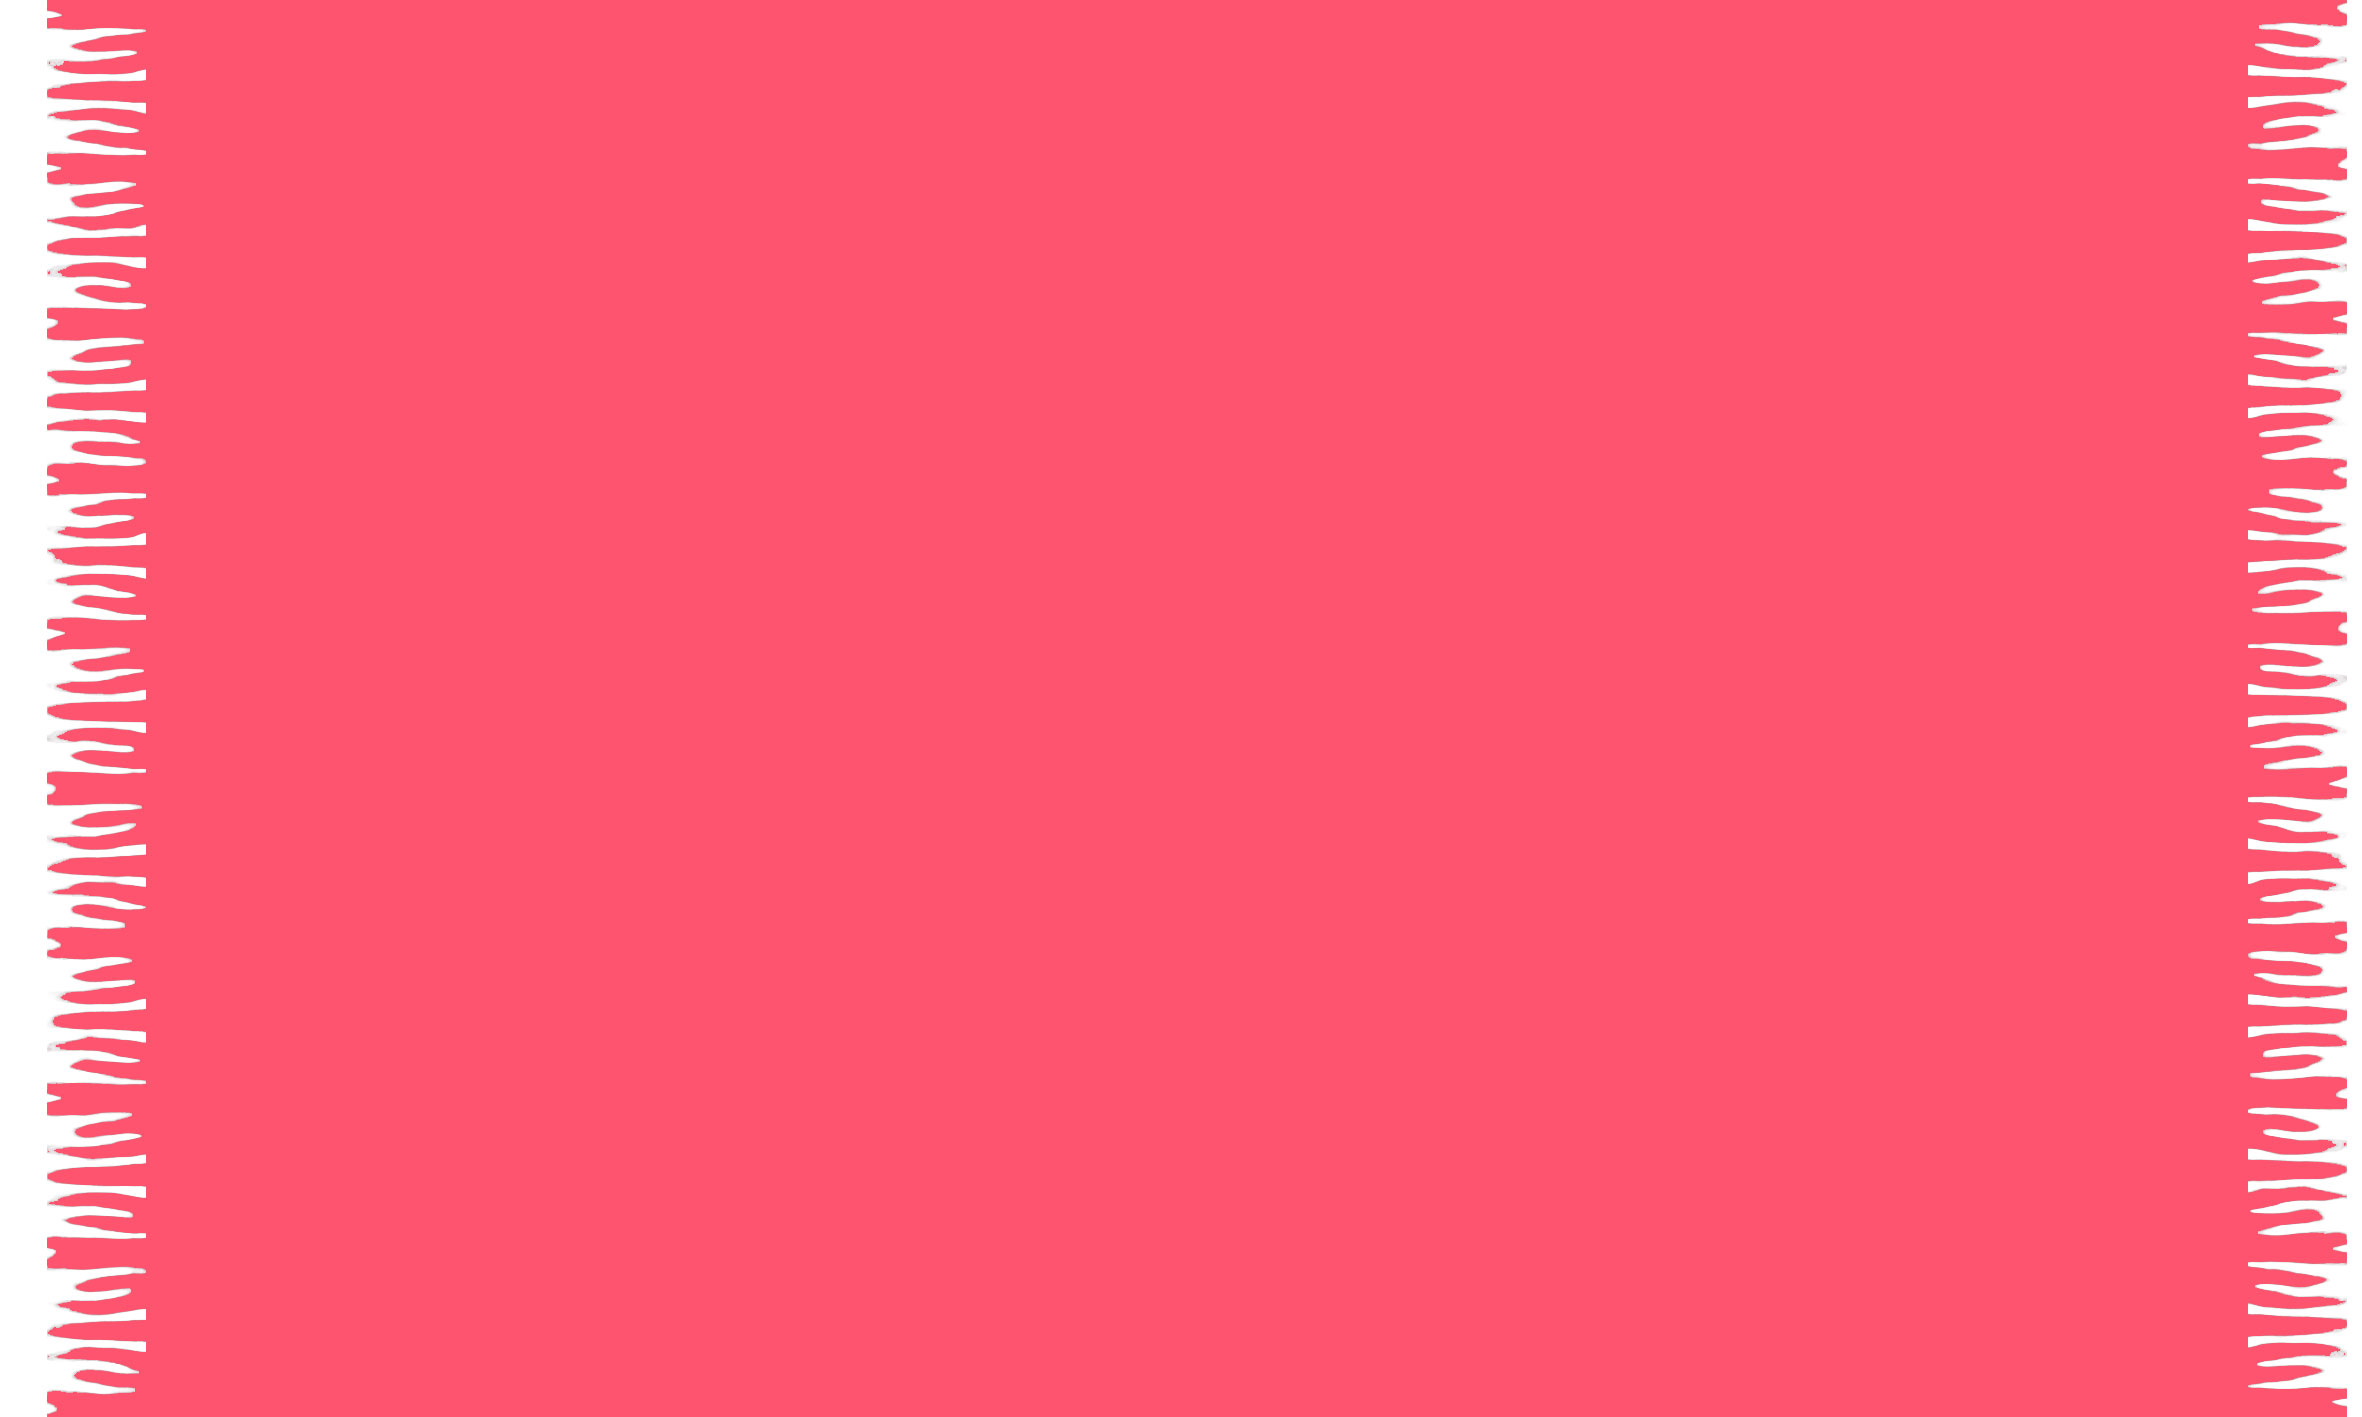 Pink salmon color - photo#7